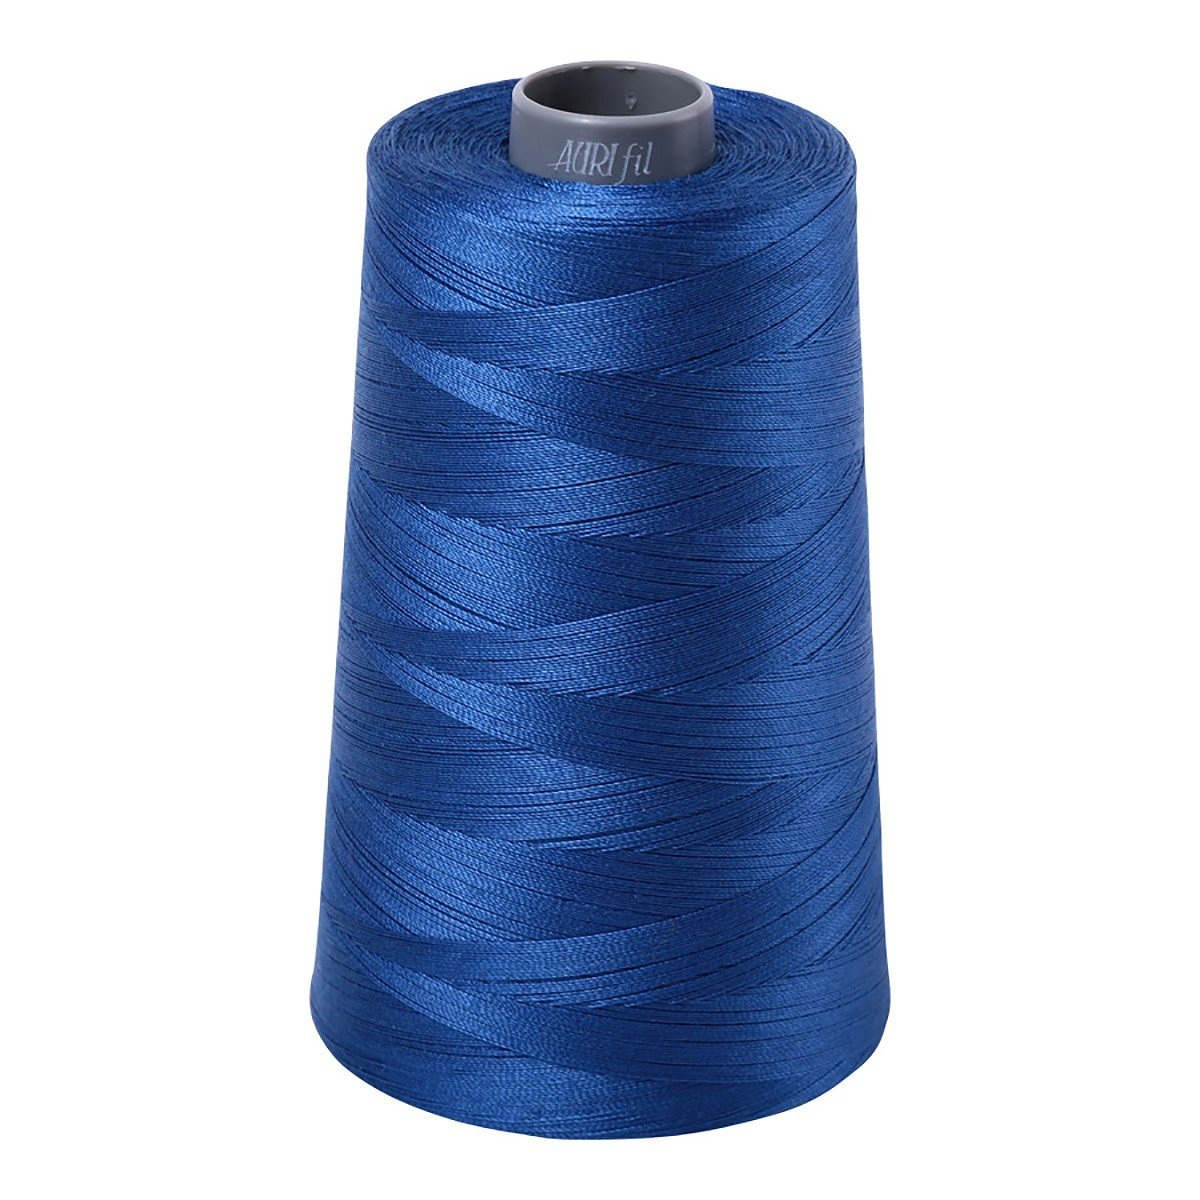 Mako (Cotton) Embroidery Thread 28wt 3609yds Dark Cobalt